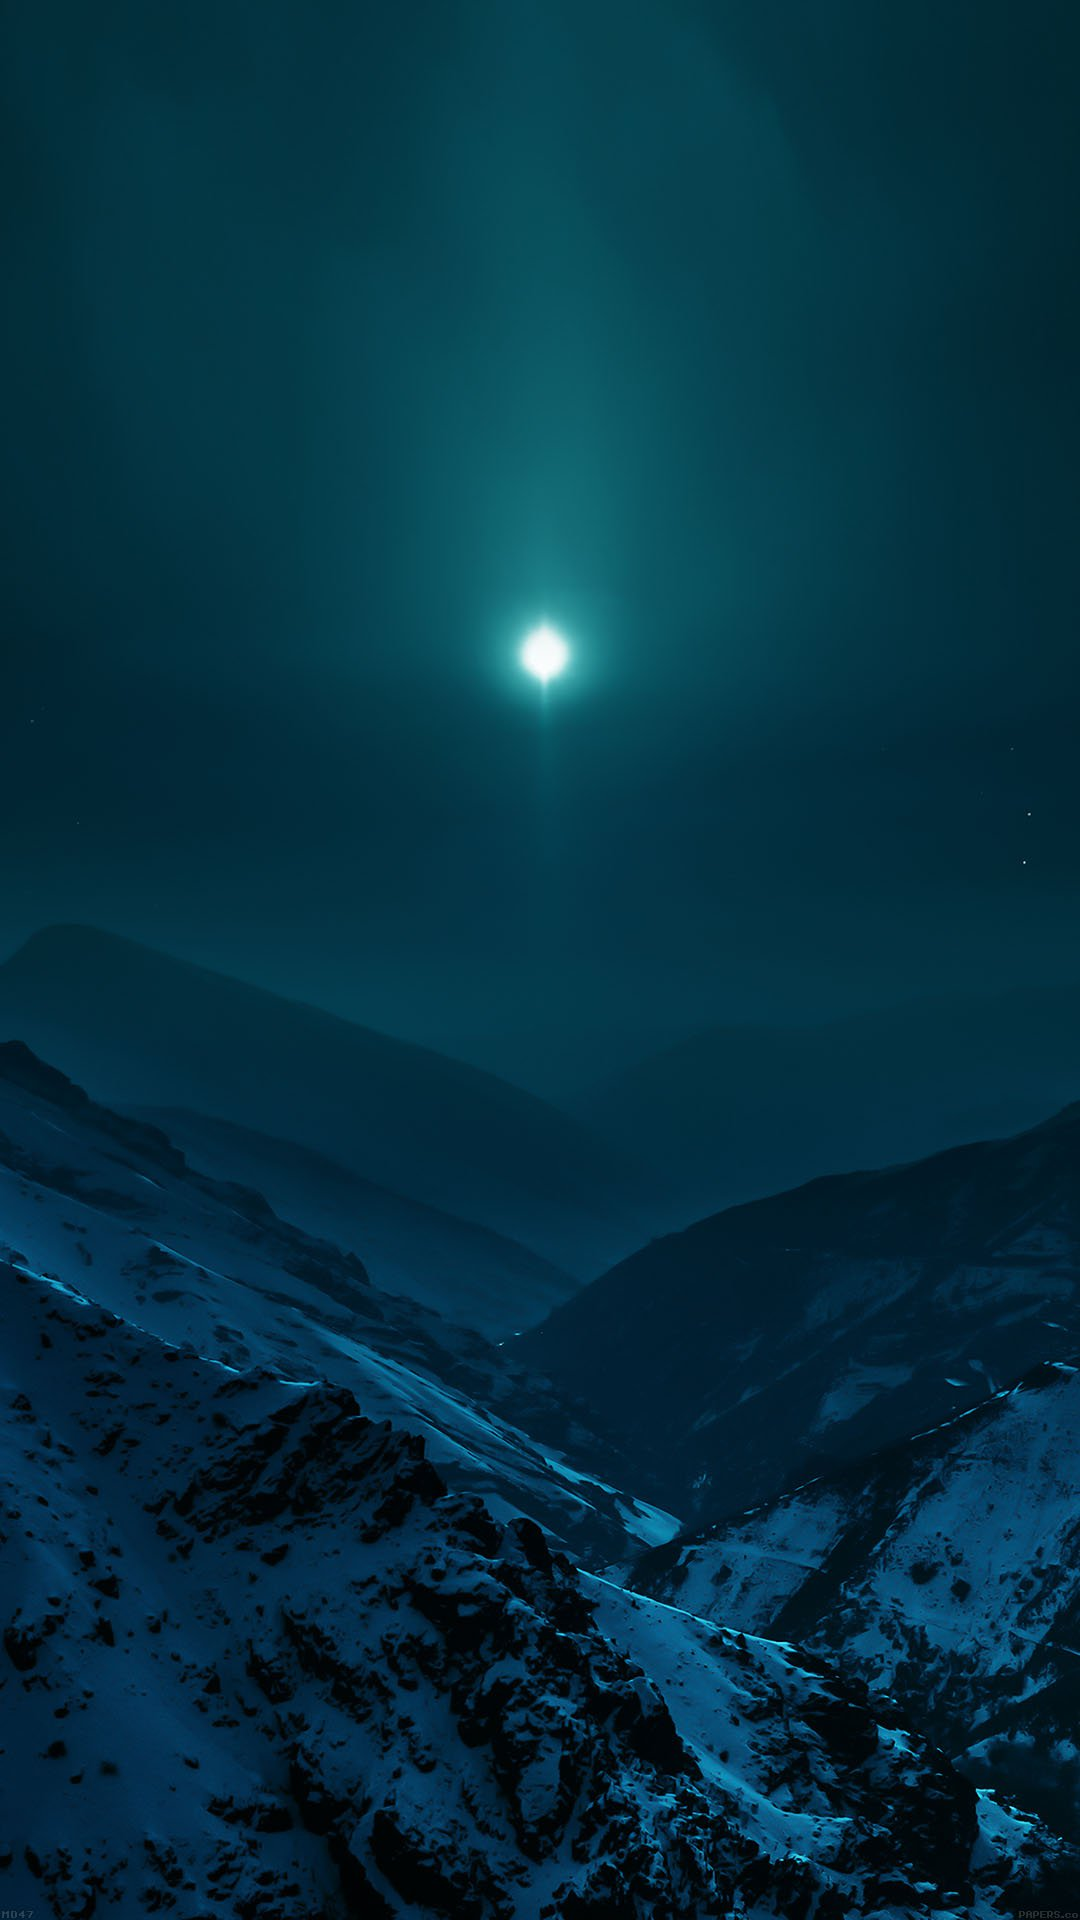 Wallpaper Nature Earth Asleep Mountain Night Android